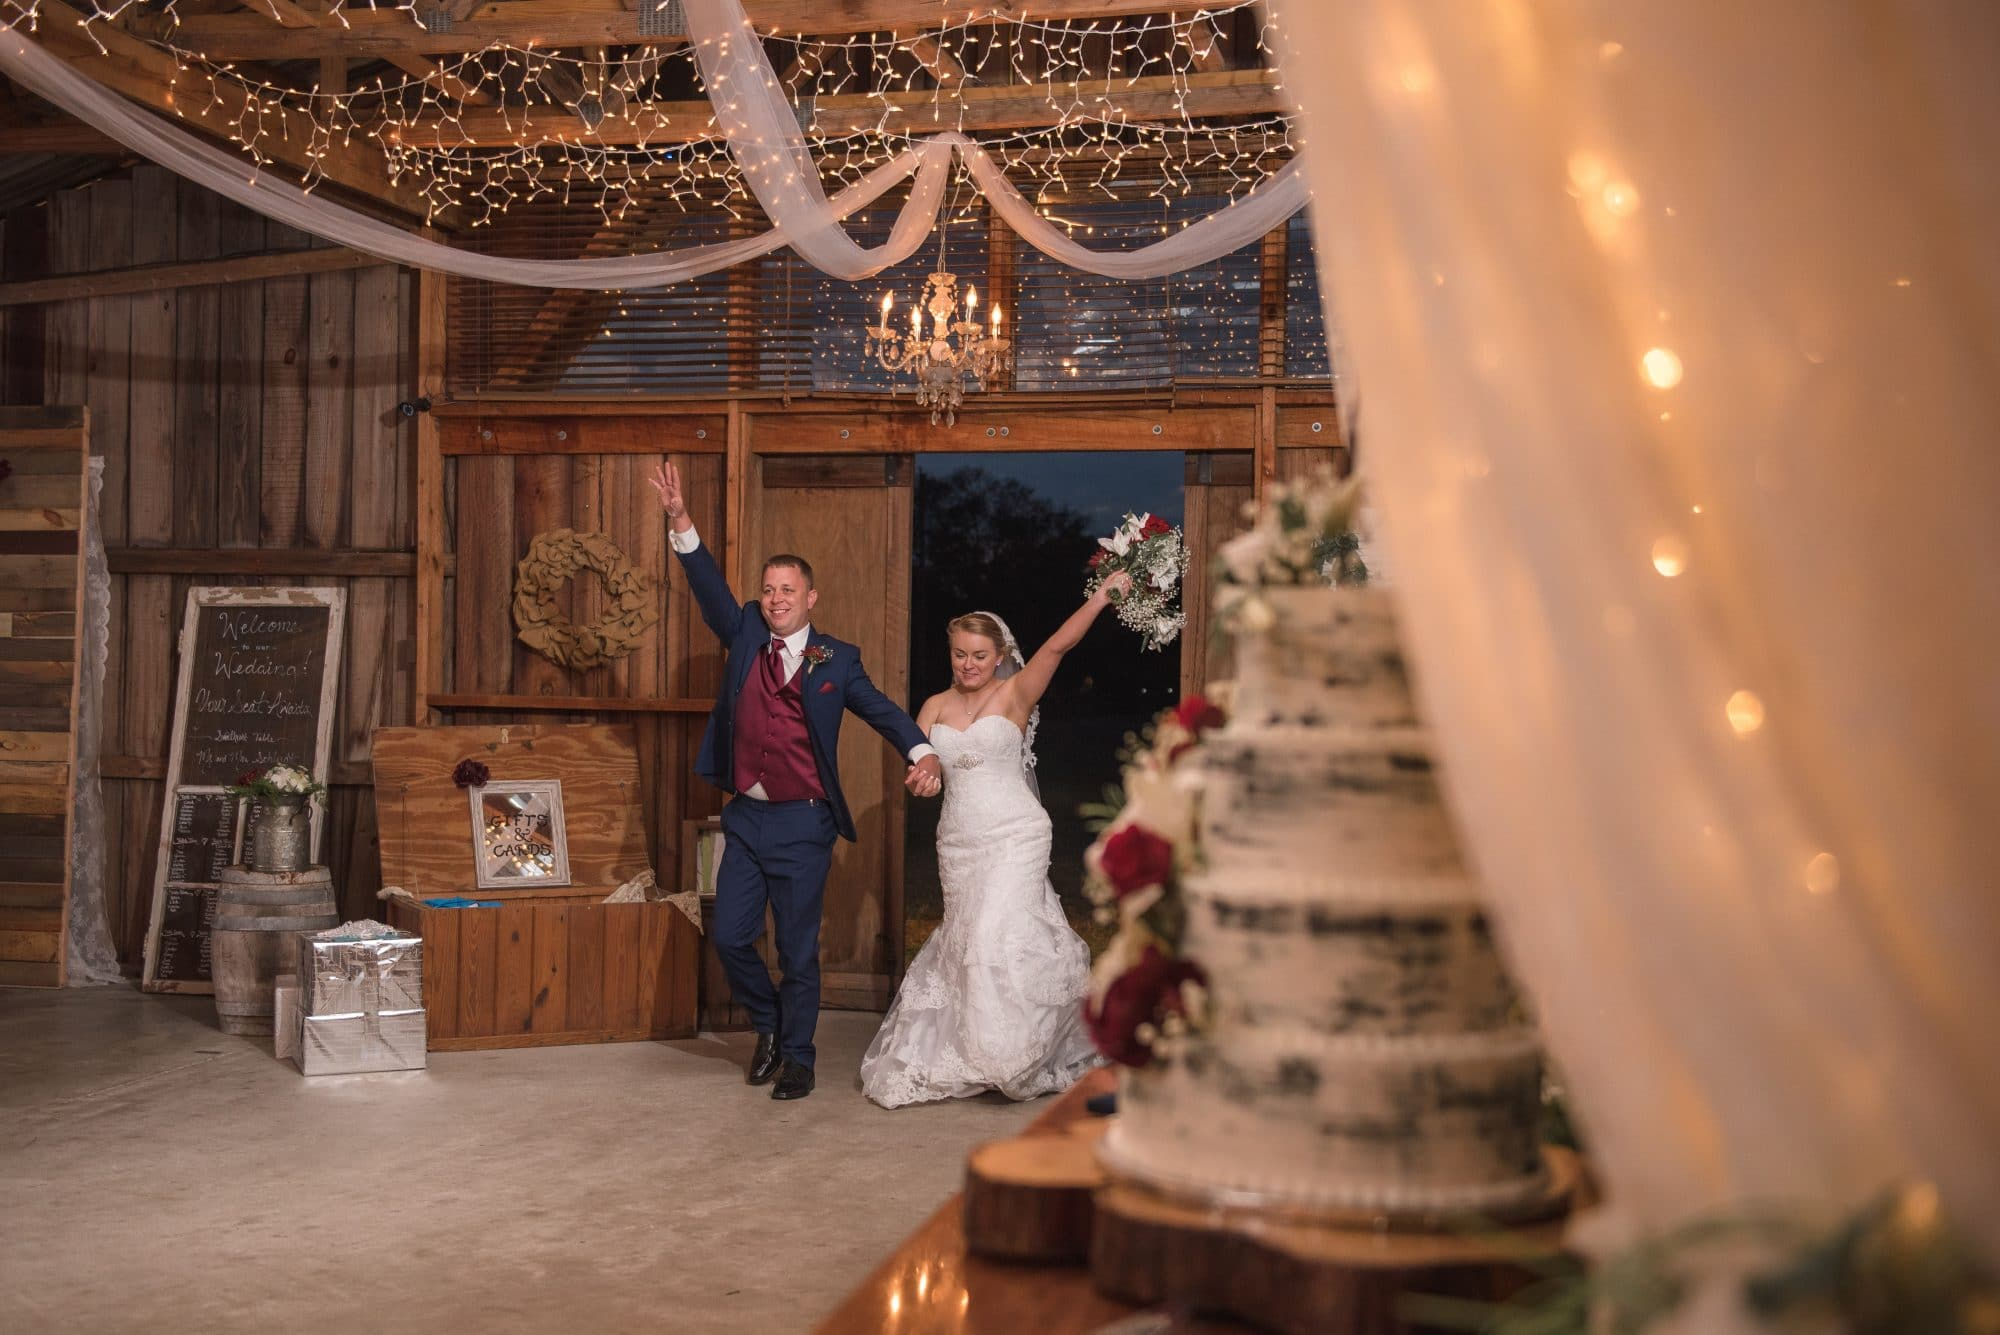 Brittany and Todd's grand entrance into their beautiful barn reception hall